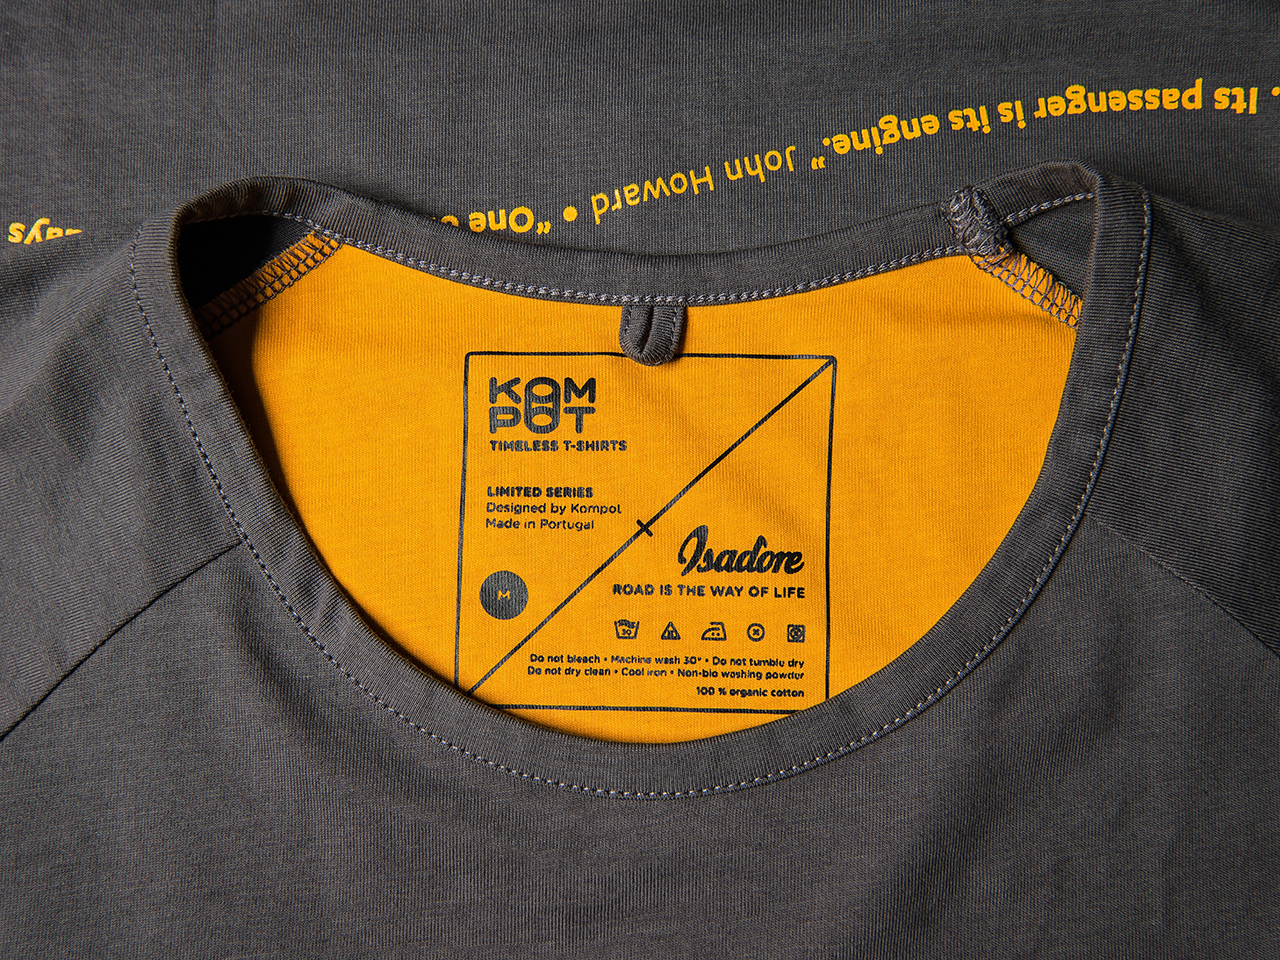 3feda14d594c9 Quotes (short sleeve). Discount. Author: Collective of authors. Brands:  Kompot, Isadore Urban